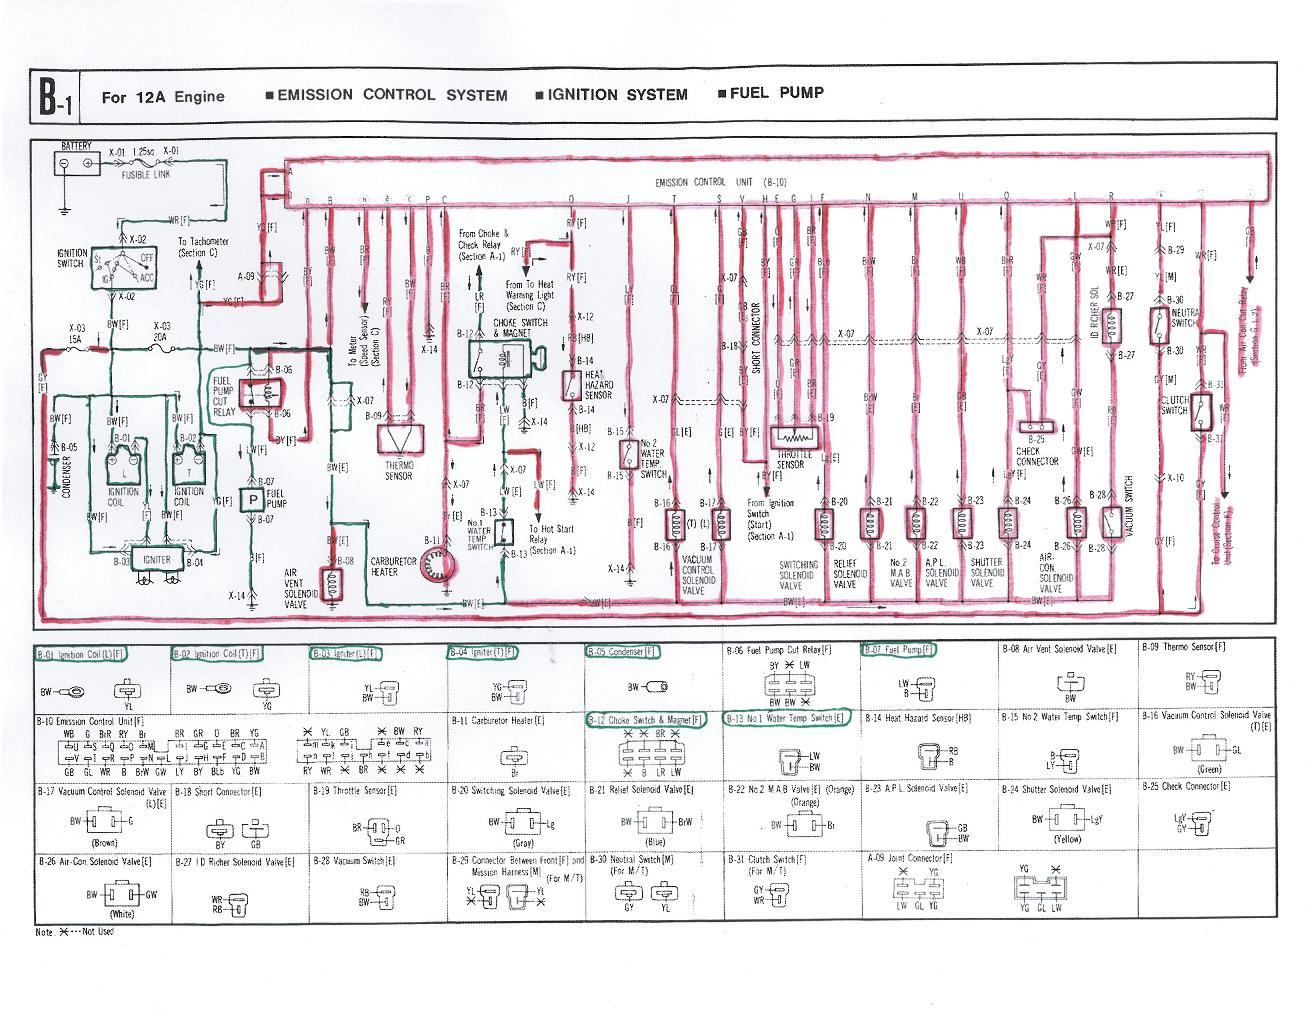 Amazing Wiring Hor From Cab To Puter 2002 Ford Sterling Diagram ...